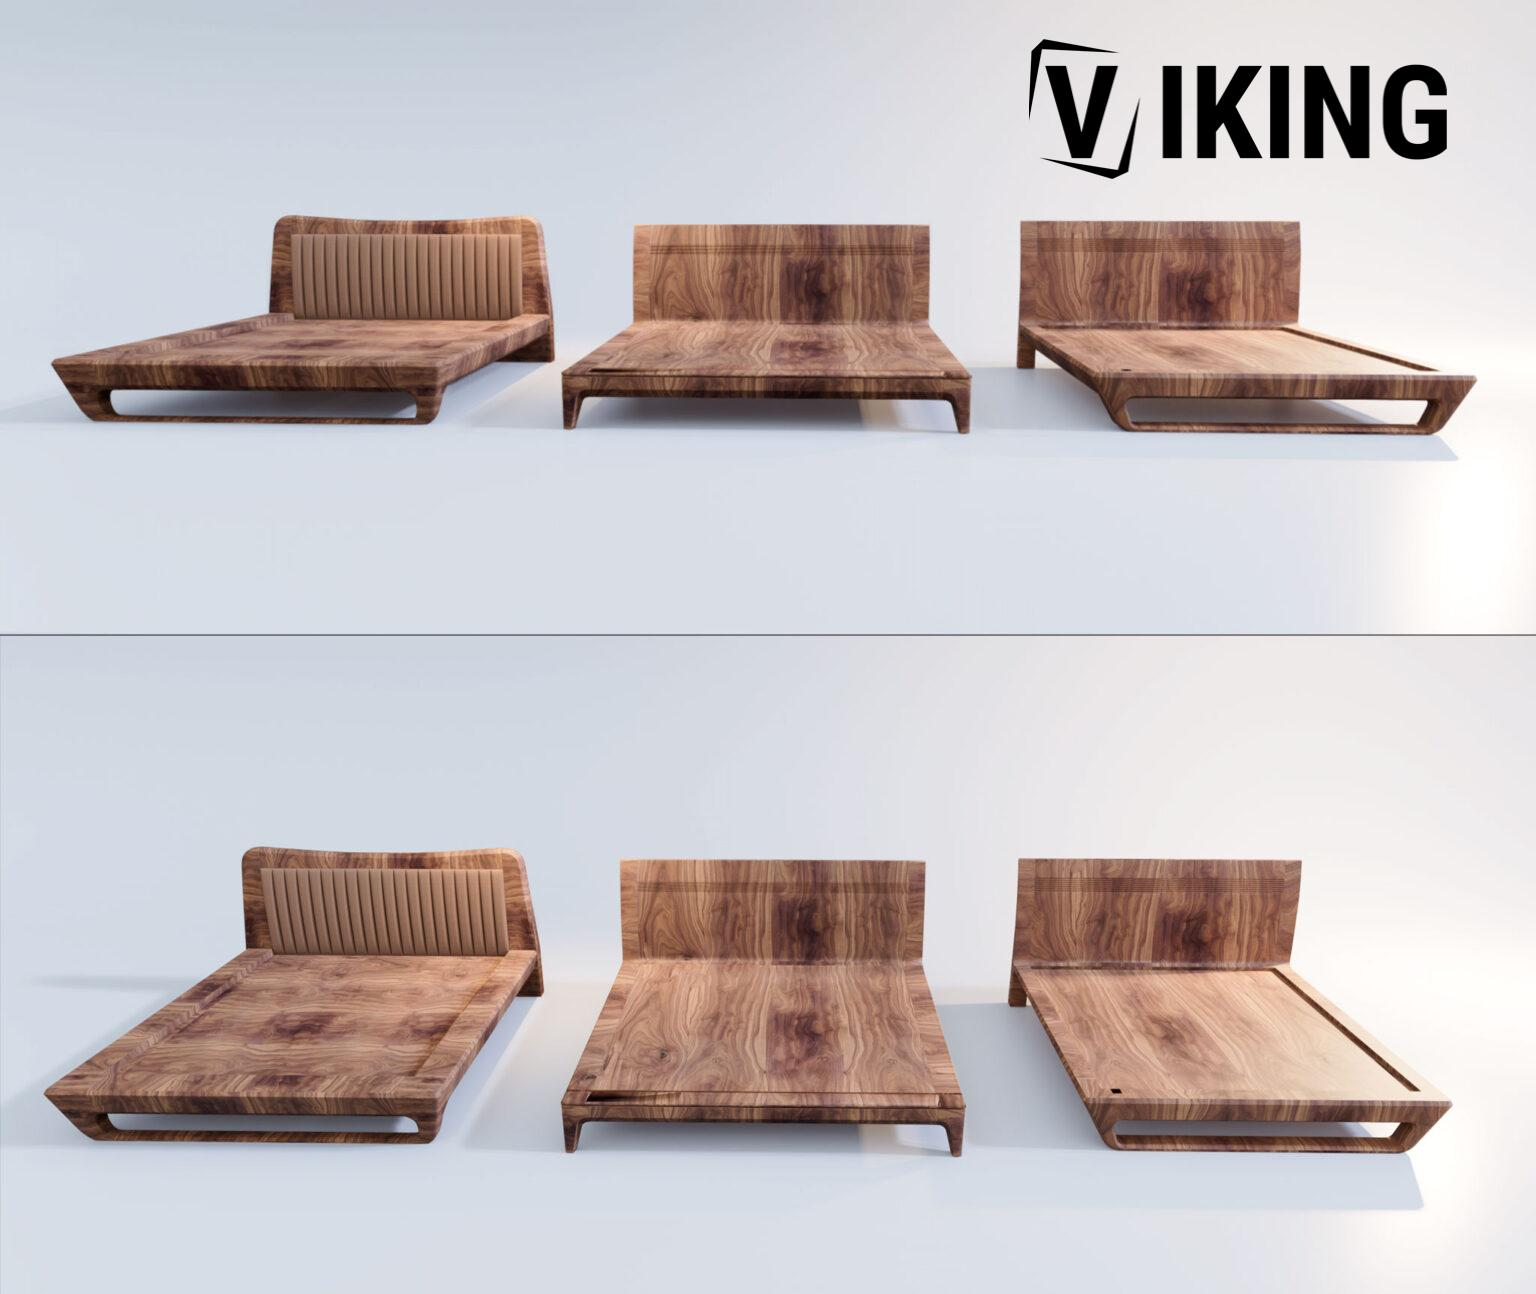 3D Bed Dong Gia Model 210 By Nguyen Ngoc Tung 1536x1294 1